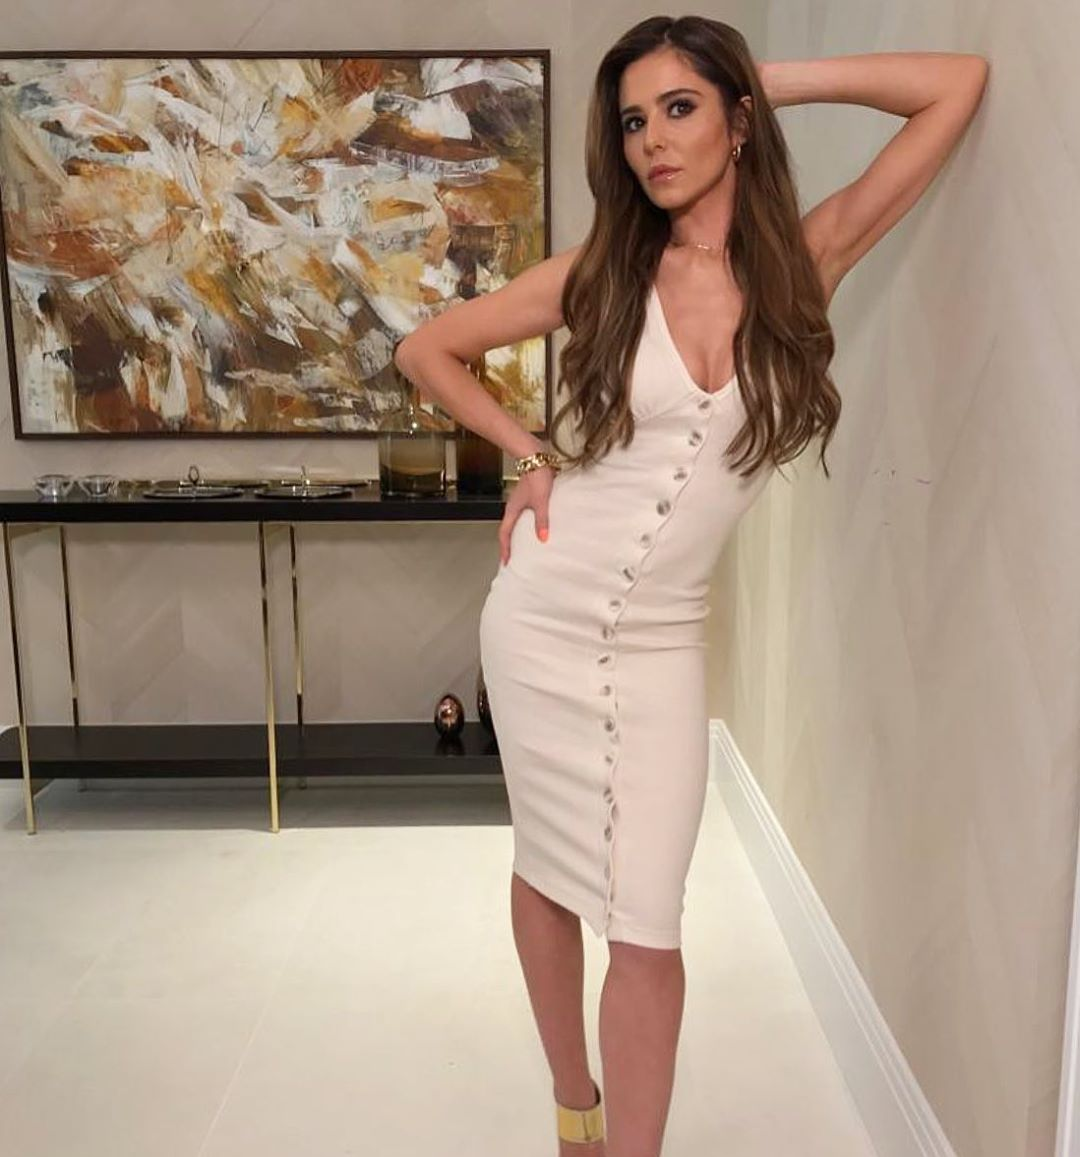 Cheryl shows off curves and cleavage on Instagram